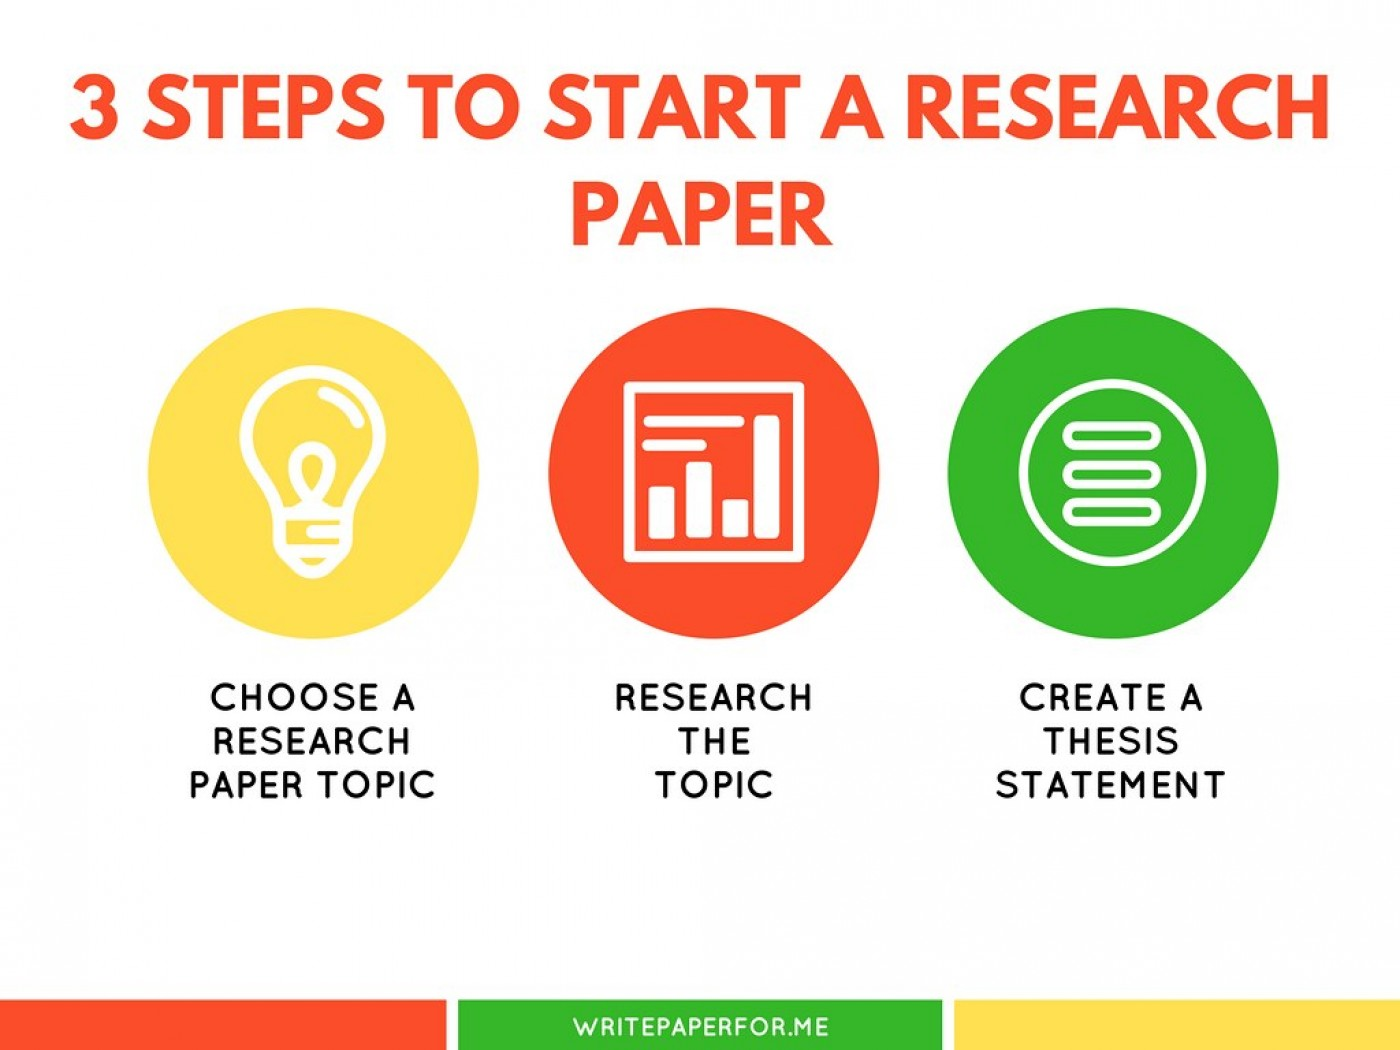 004 Research Paper 44059860914 0a9ff0d74e B How To Start Beautiful A Write Outline Apa Do Proposal 1400